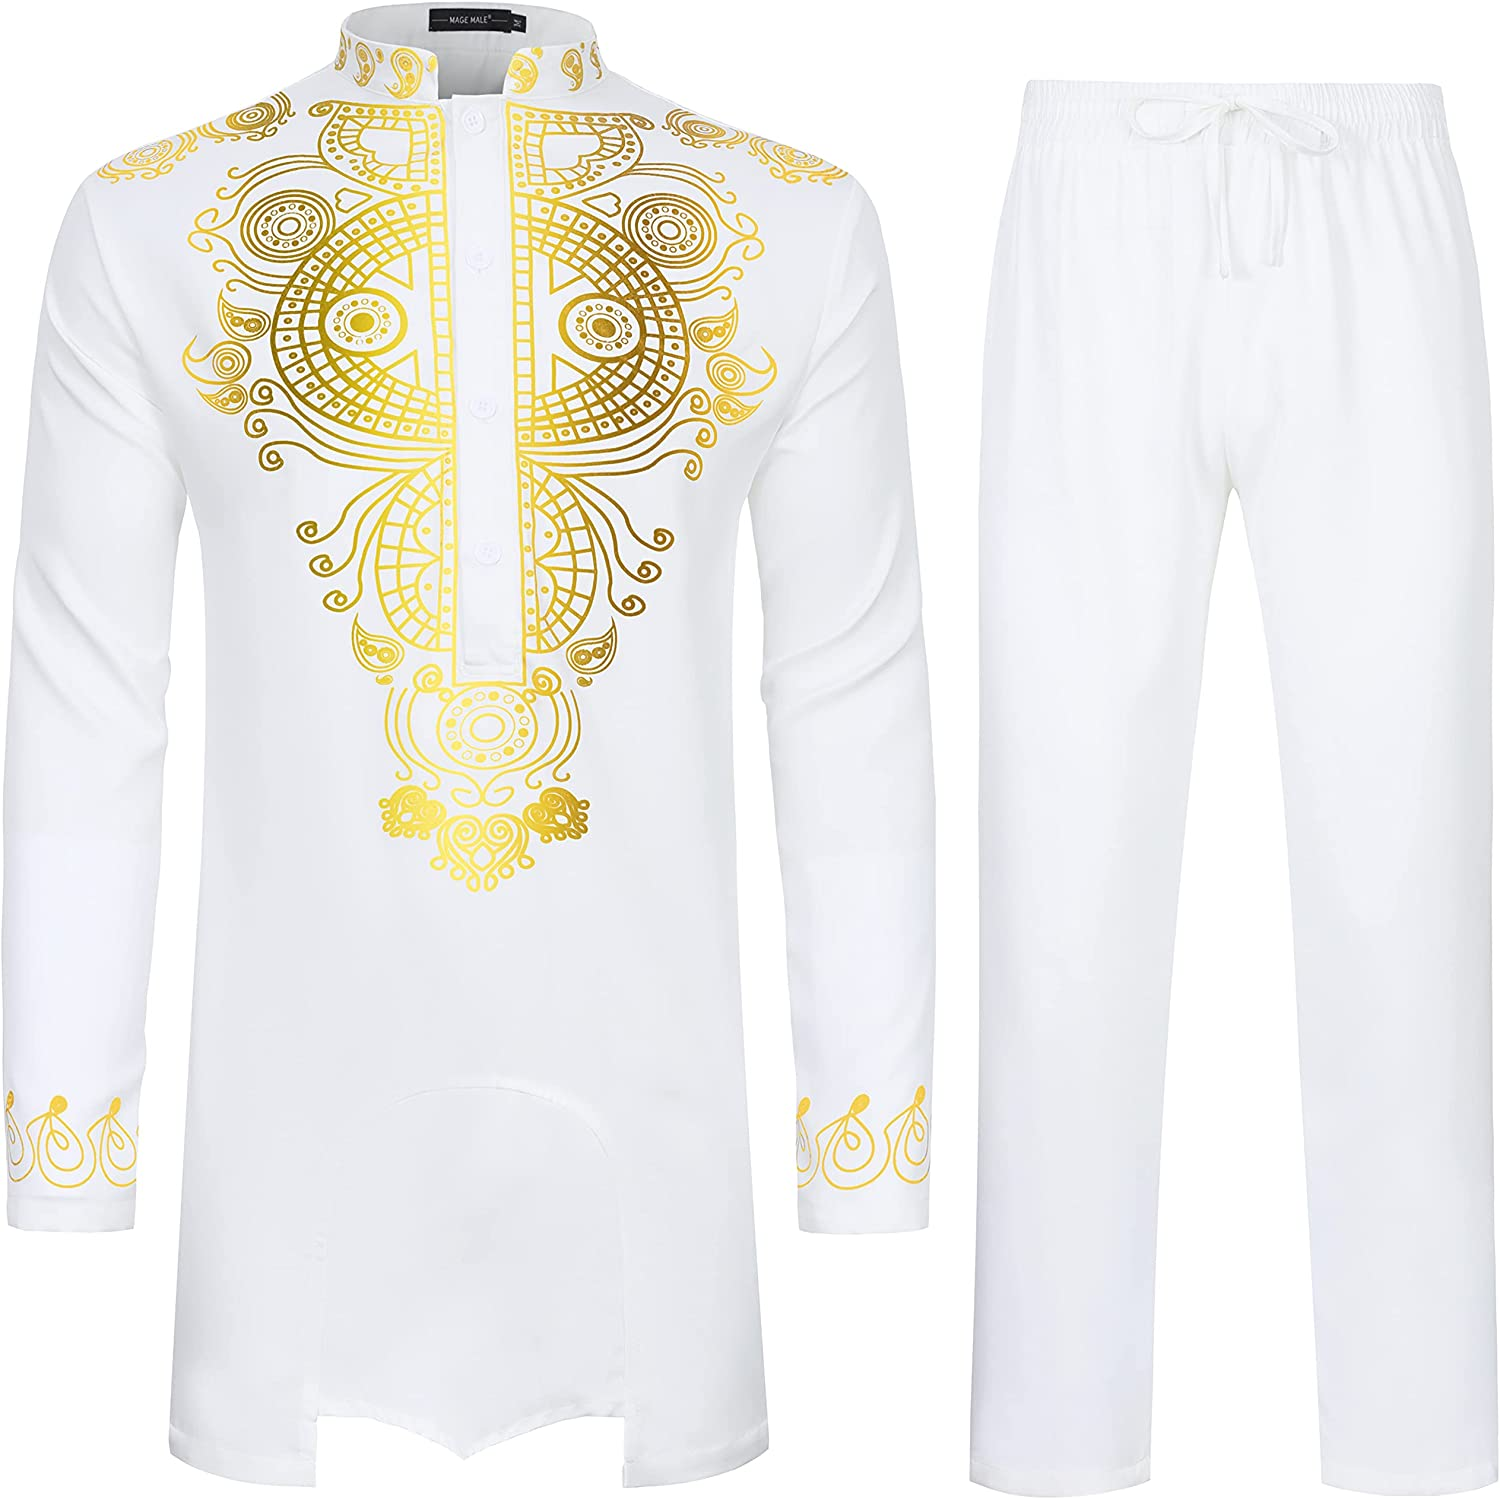 MAGE MALE Men's 2 Piece Slim Fit Suit Set African Luxury Gold Printed Outfit